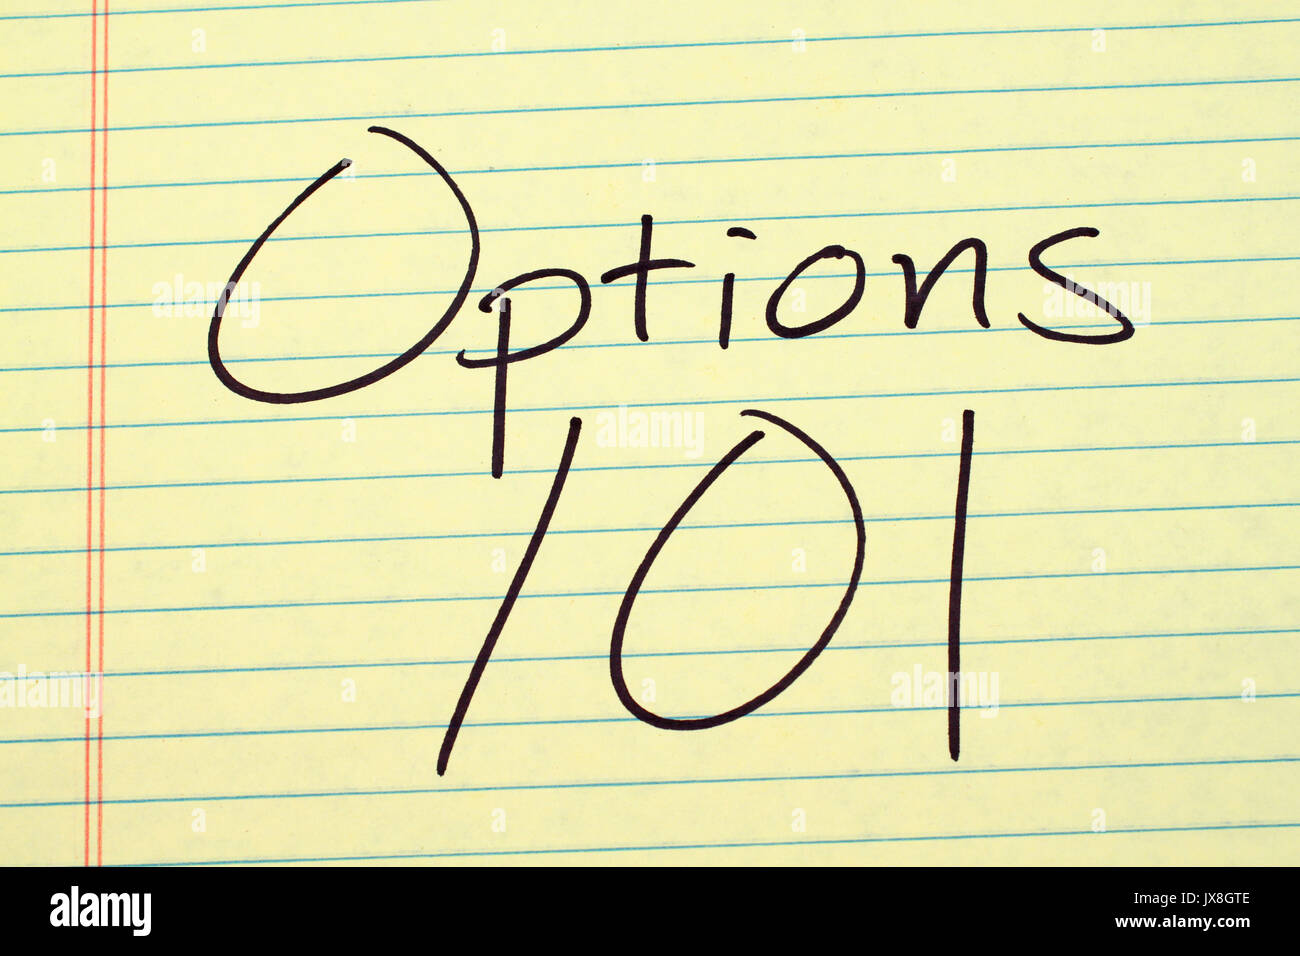 The words 'Options 101' on a yellow legal pad - Stock Image